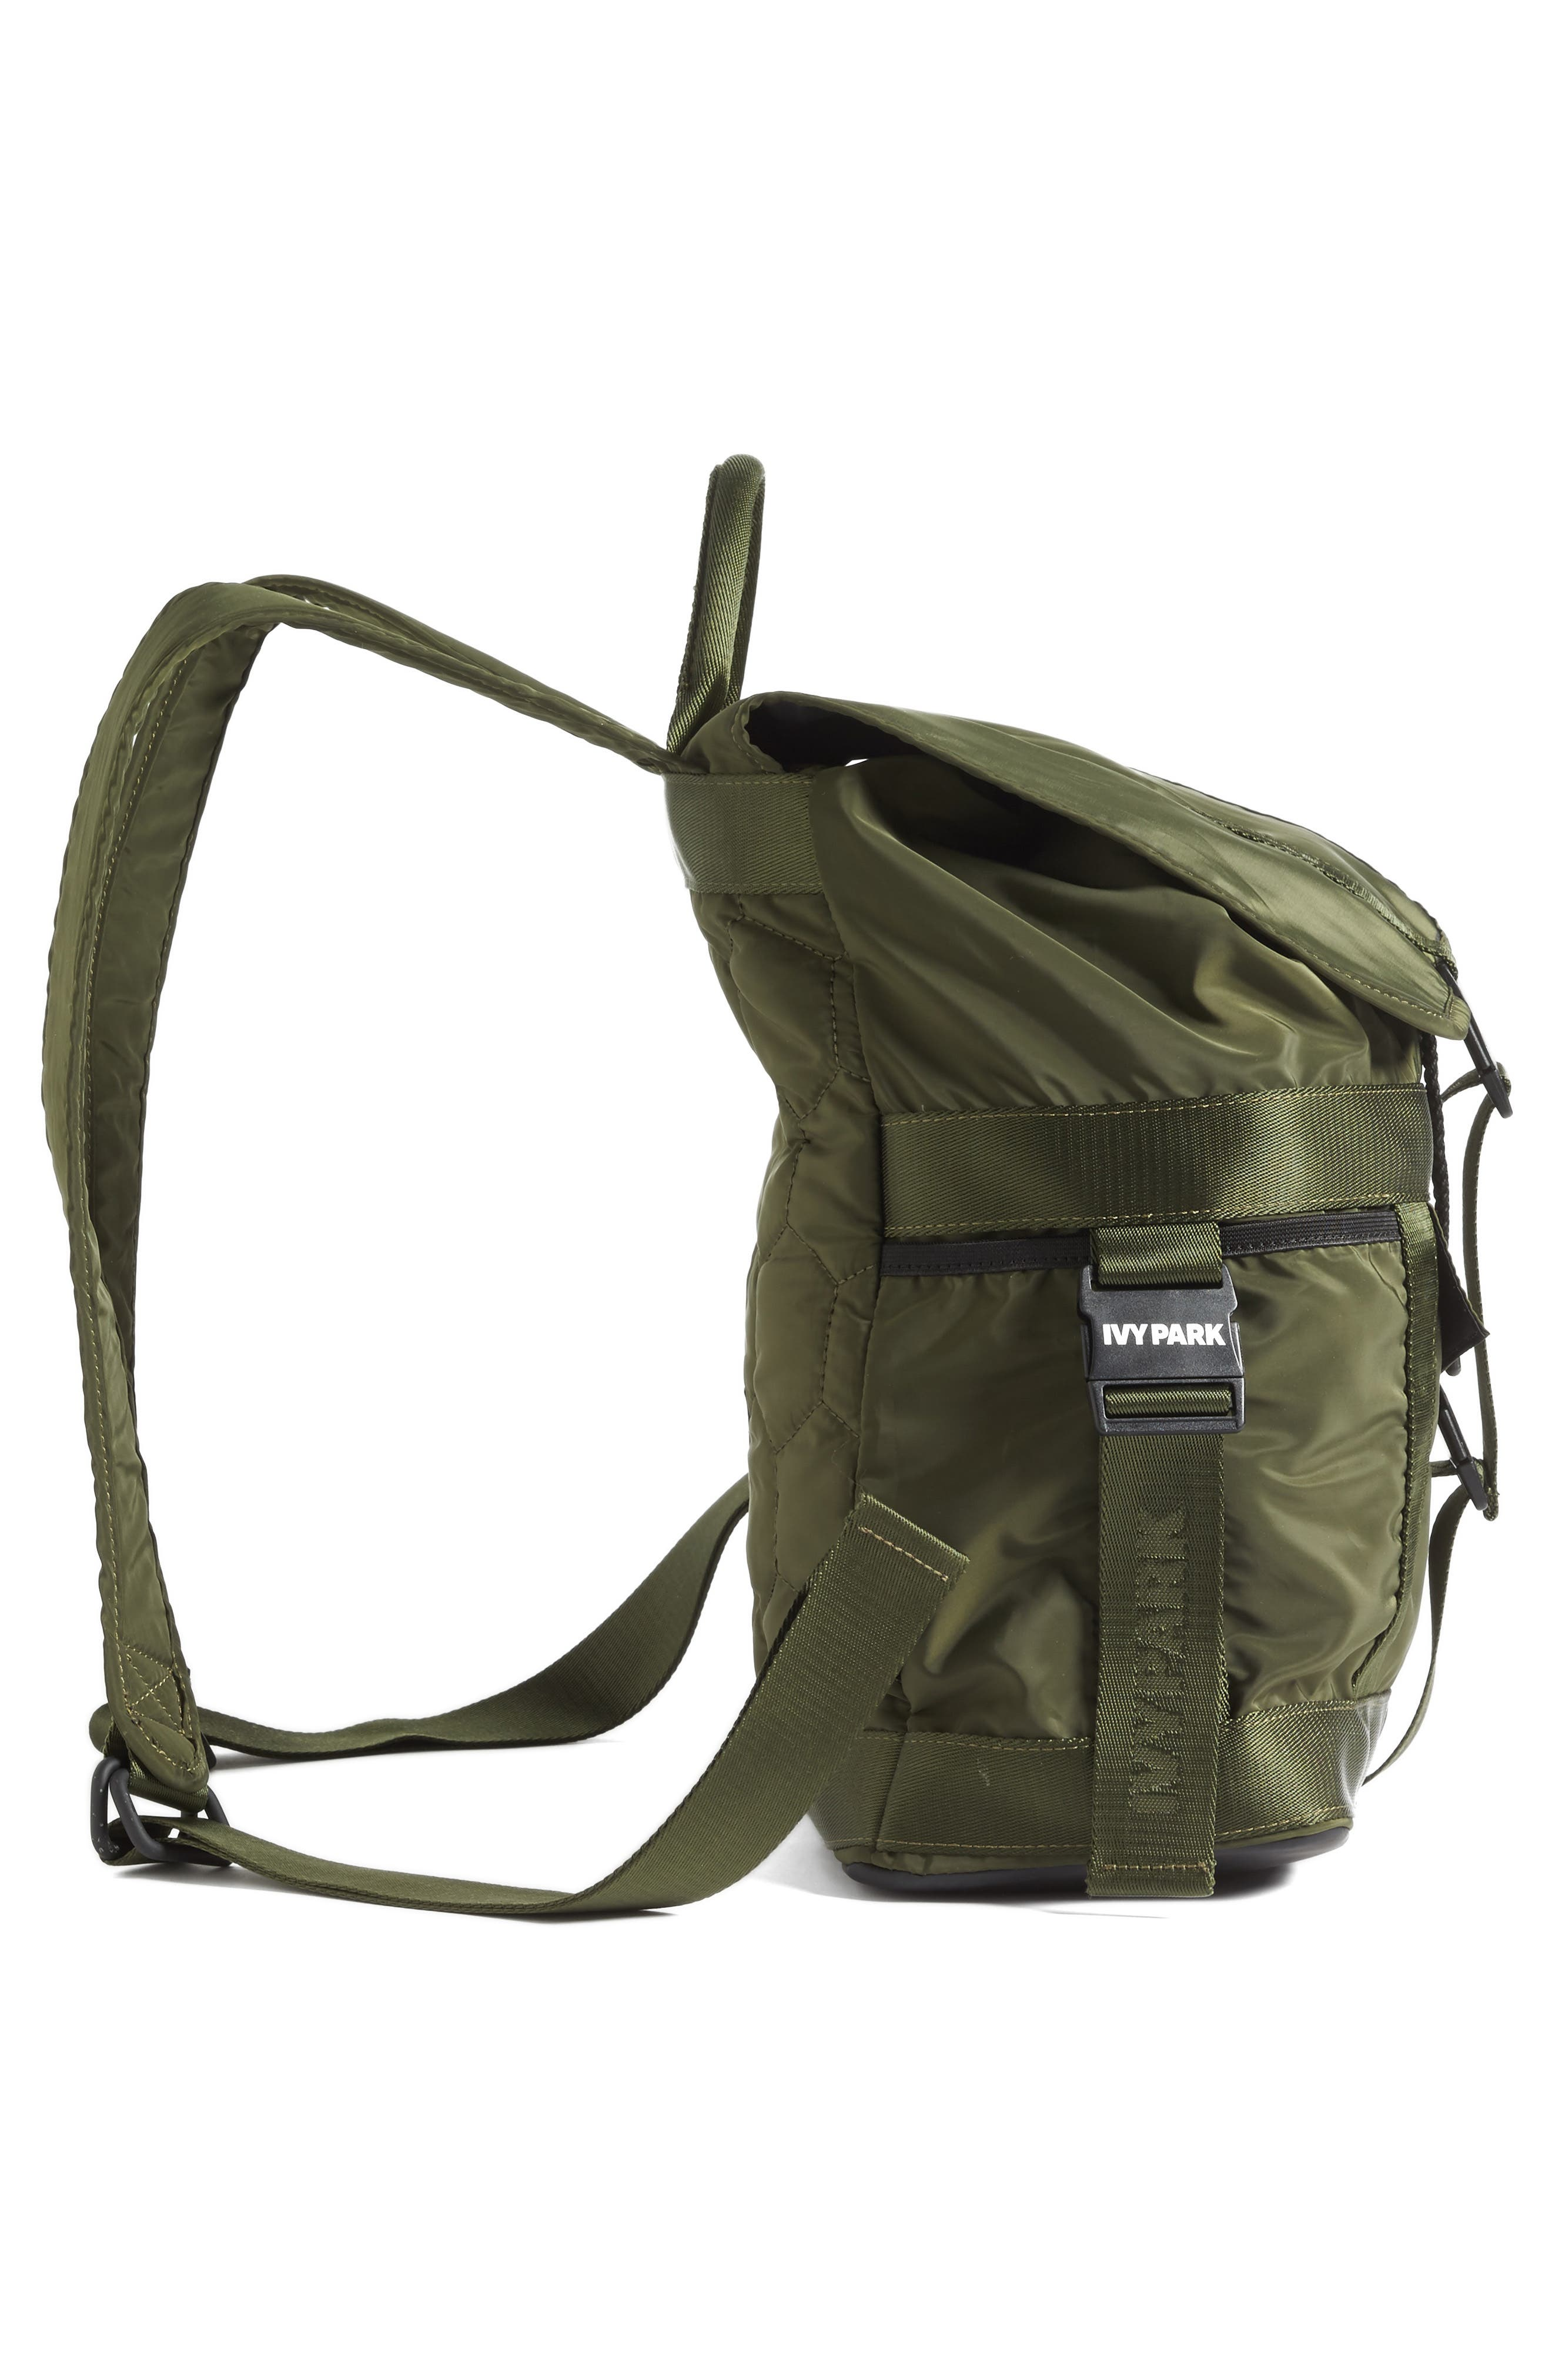 Parachute Strap Backpack,                             Alternate thumbnail 5, color,                             310